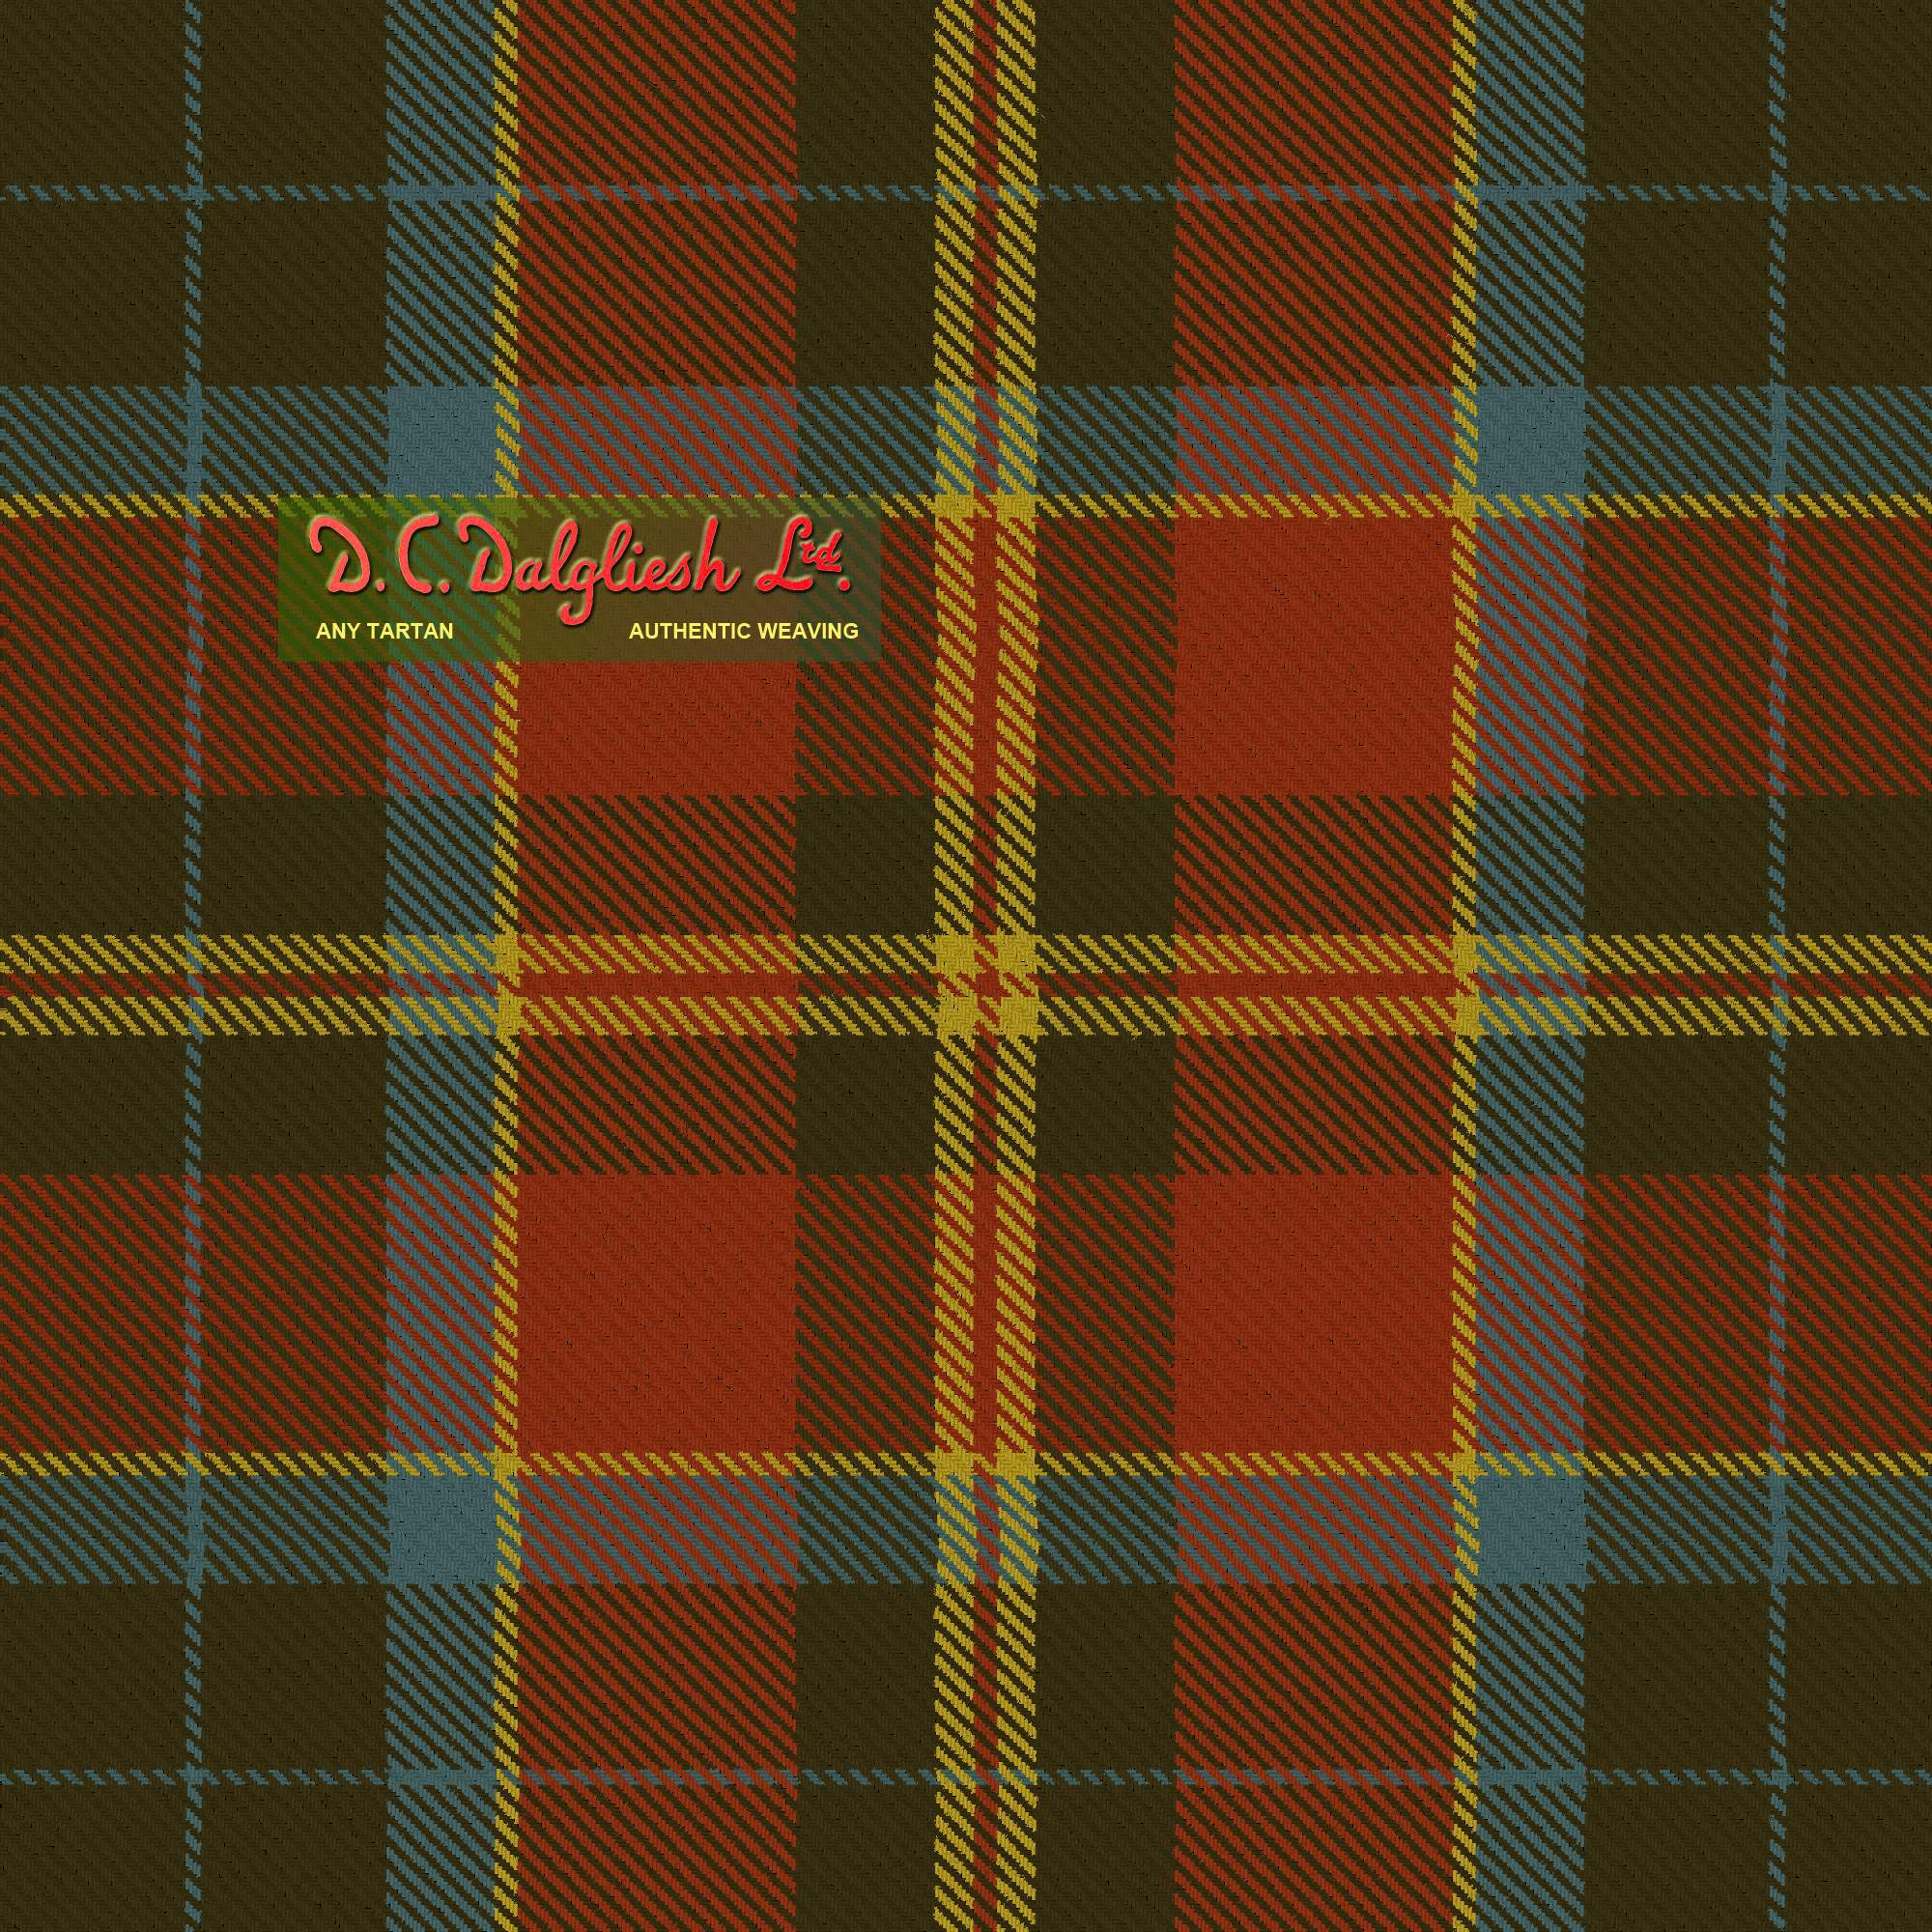 Craigholme (Reproduction Colours)